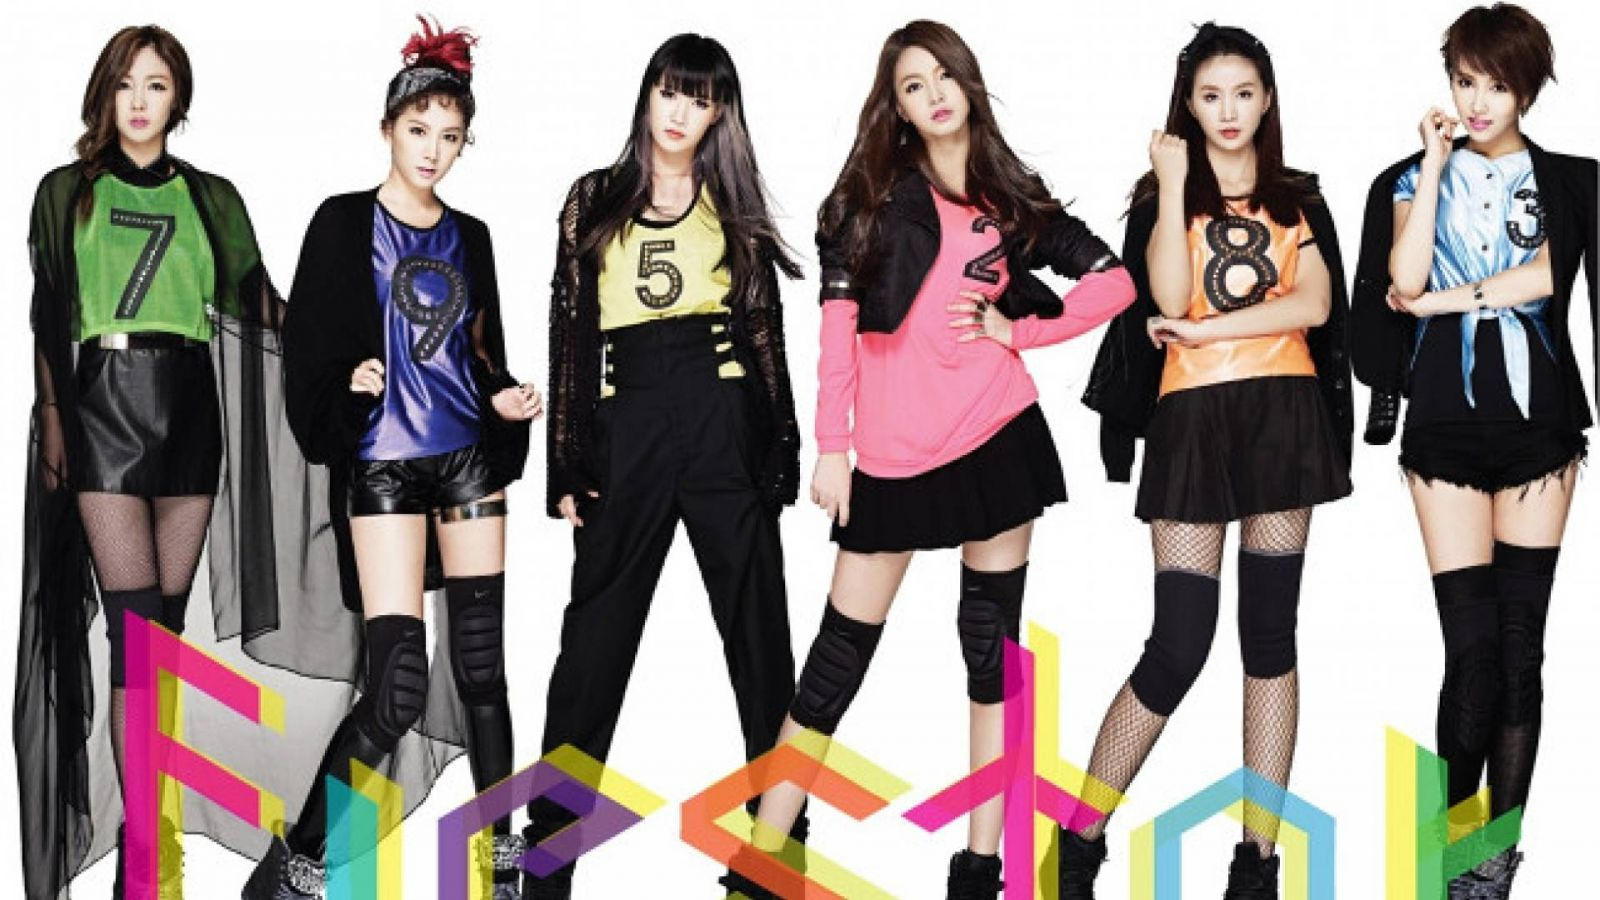 Vídeos pré-debut do FIESTAR © Loen Entertainment